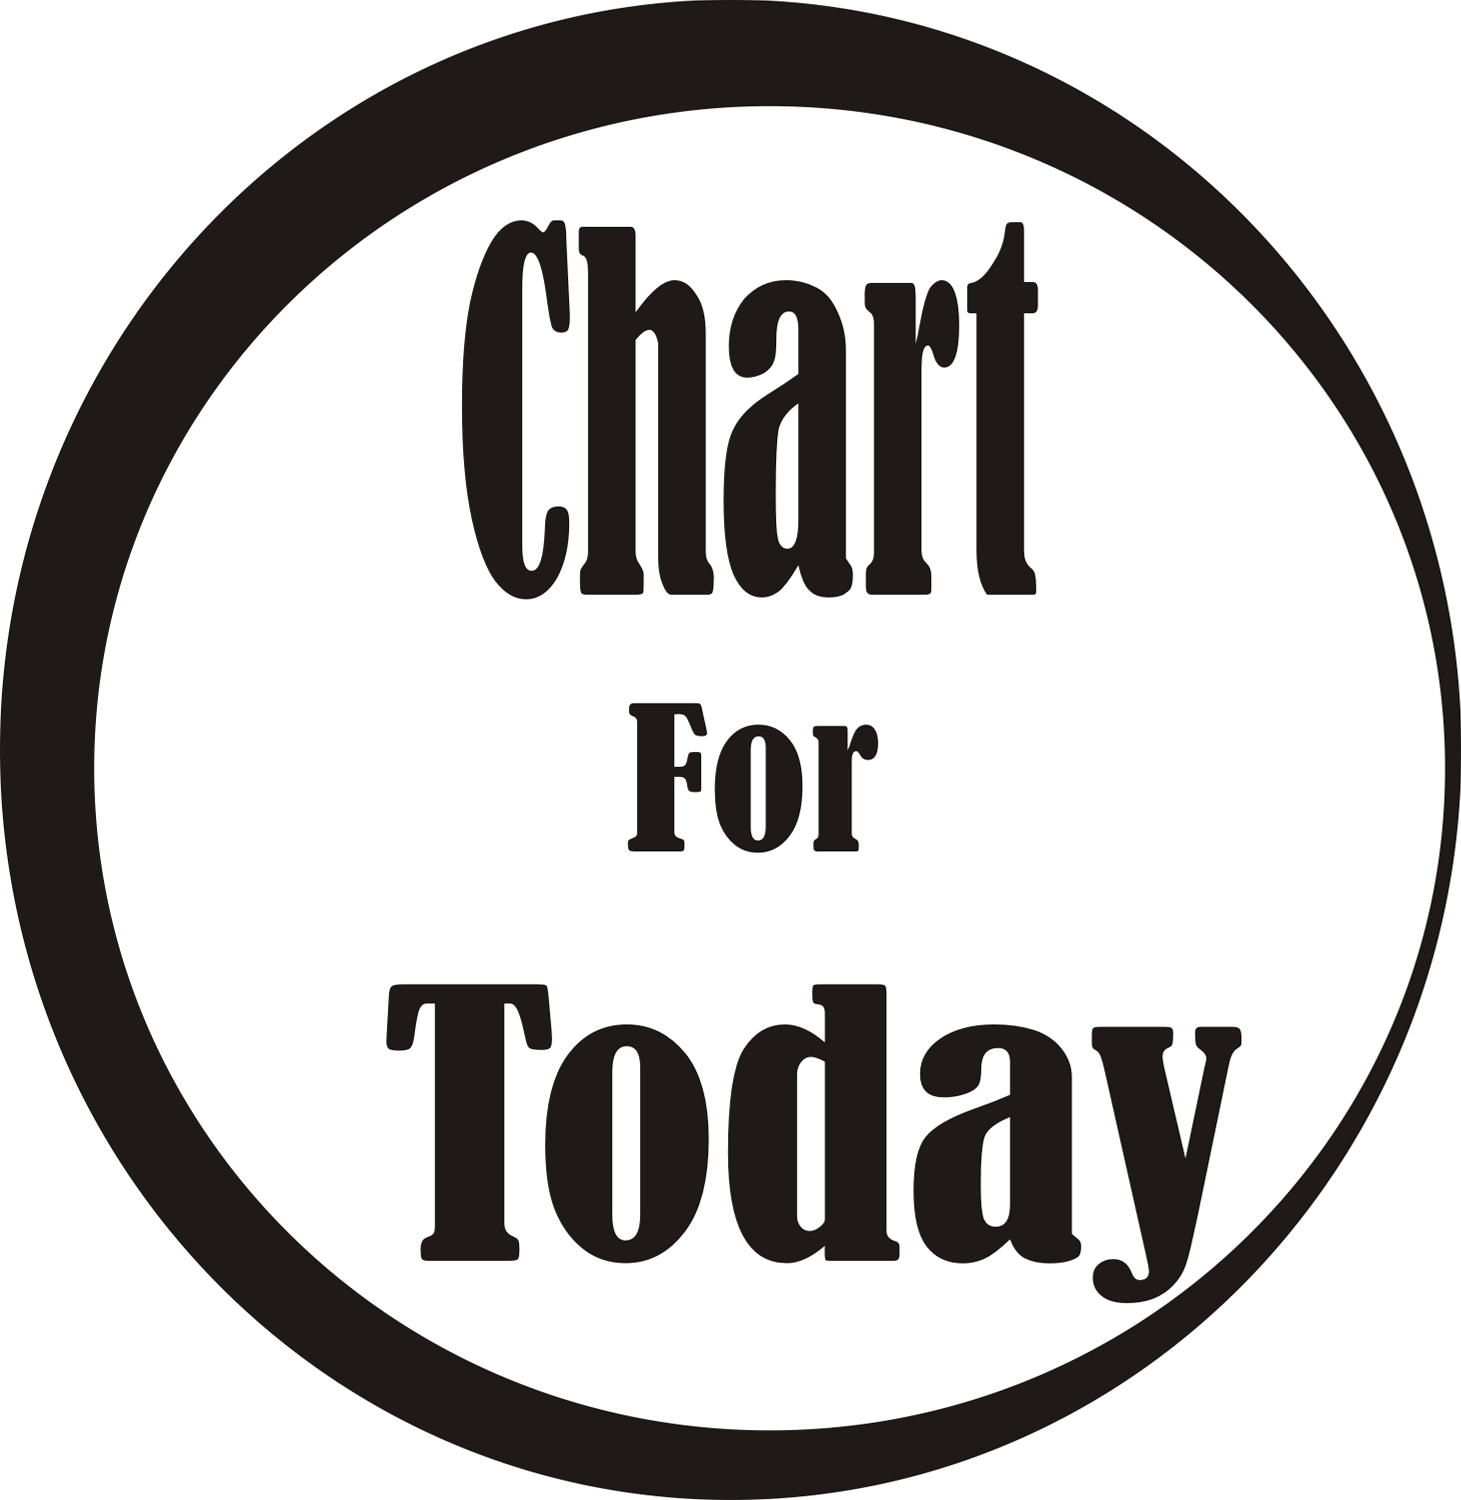 CHART FOR TODAY